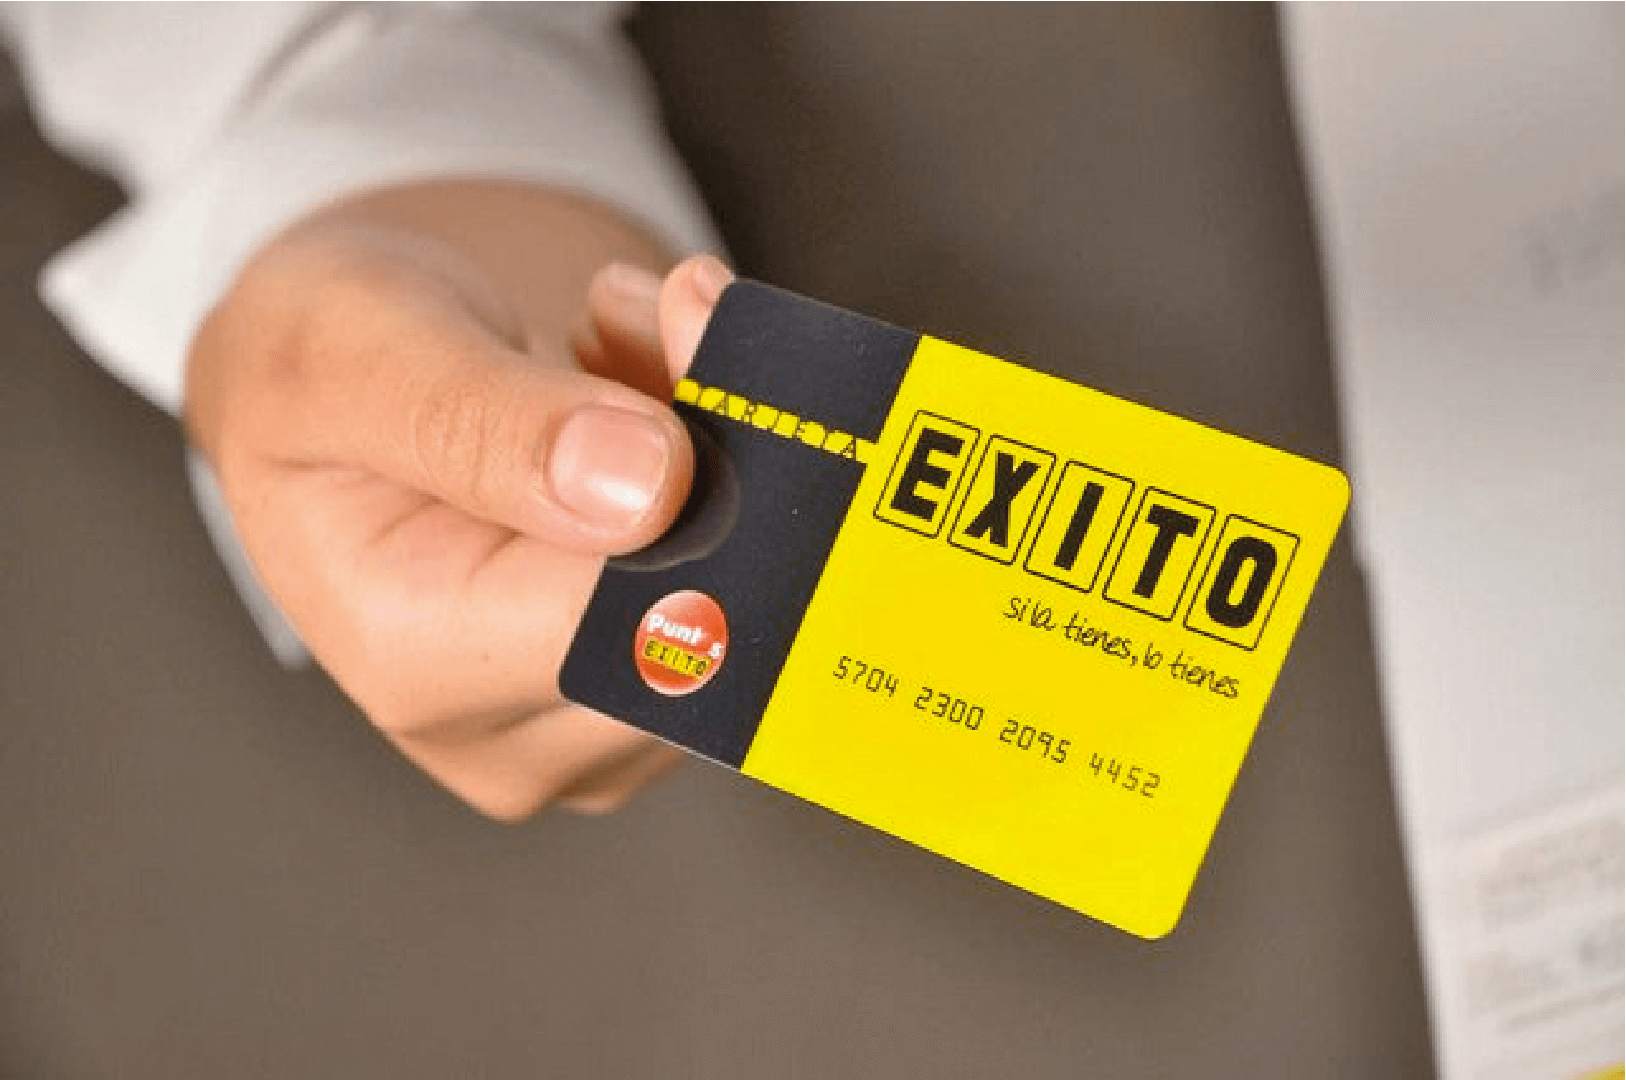 Estate Business and Éxito Card